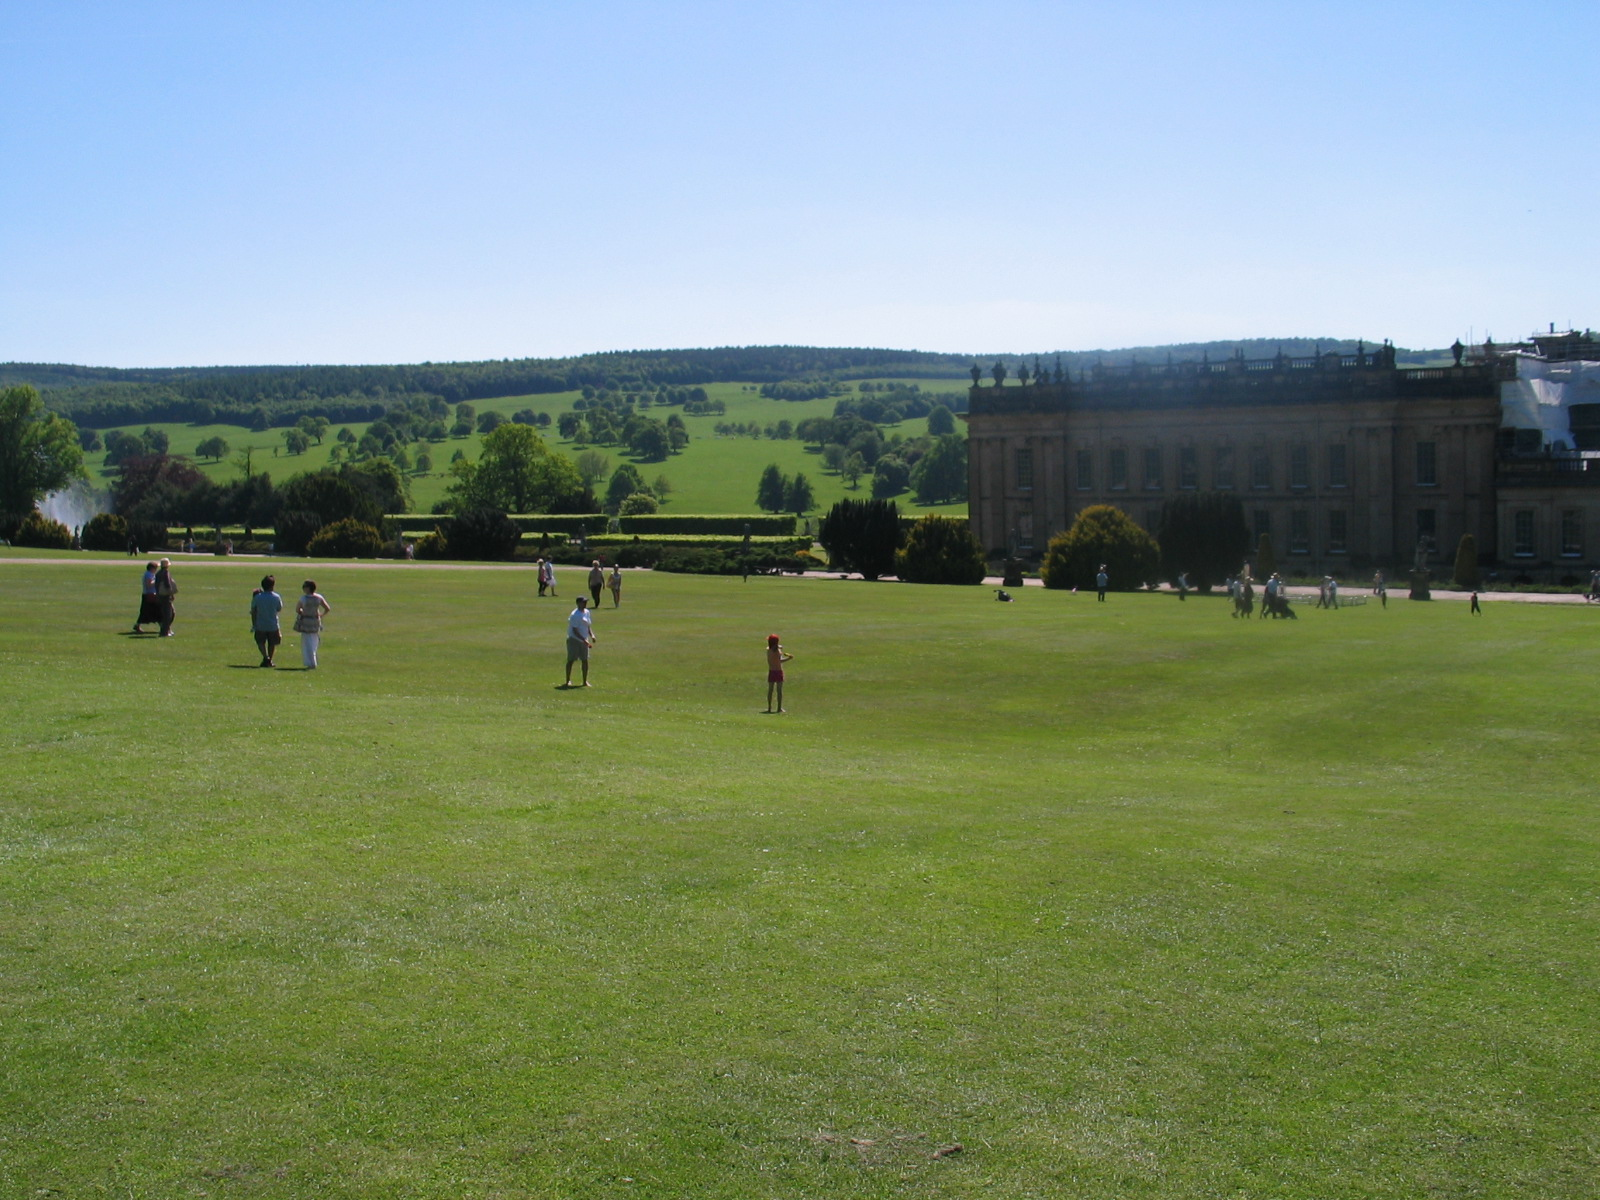 The Lawn at Chatsworth